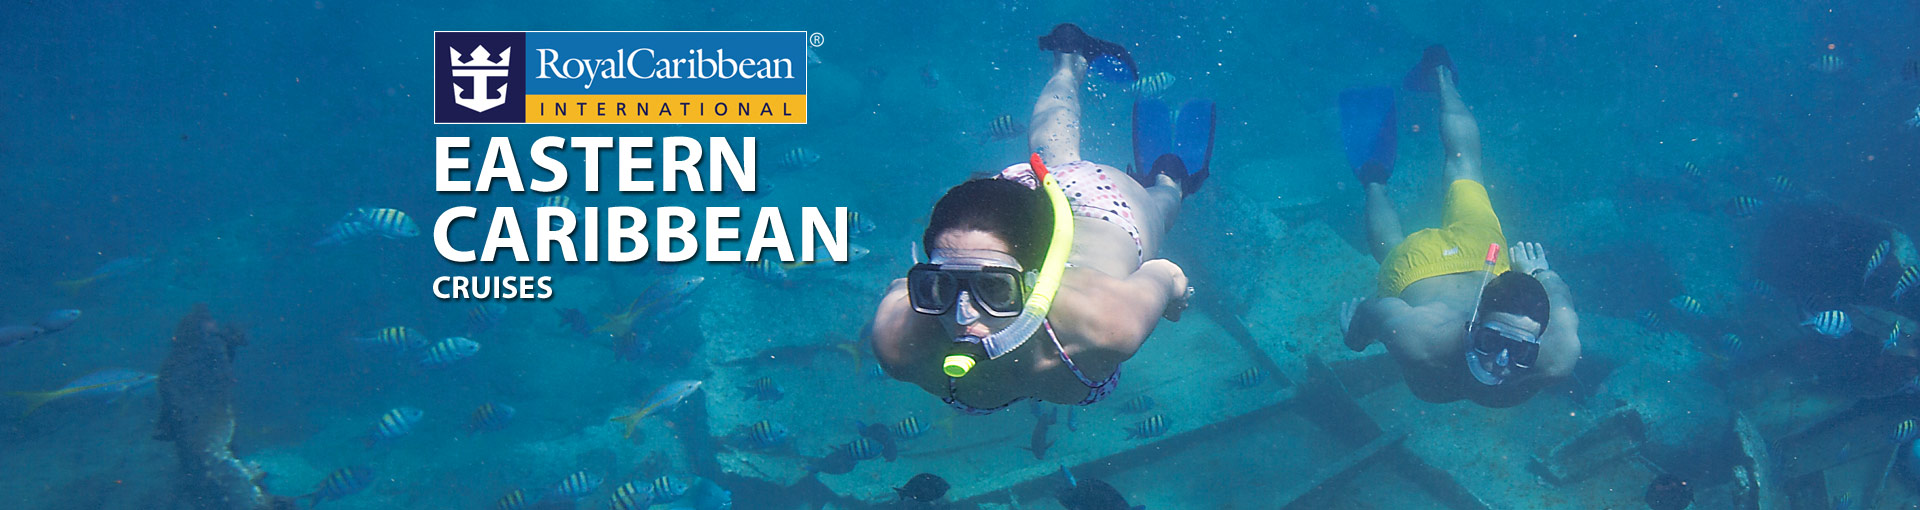 Royal Caribbean Eastern Caribbean Cruises